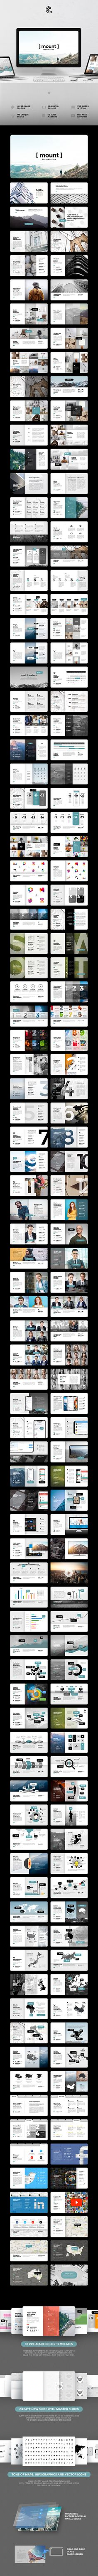 Mount Powerpoint PPTX #easy #business • Download ➝ https://graphicriver.net/item/mount-powerpoint/21460974?ref=pxcr